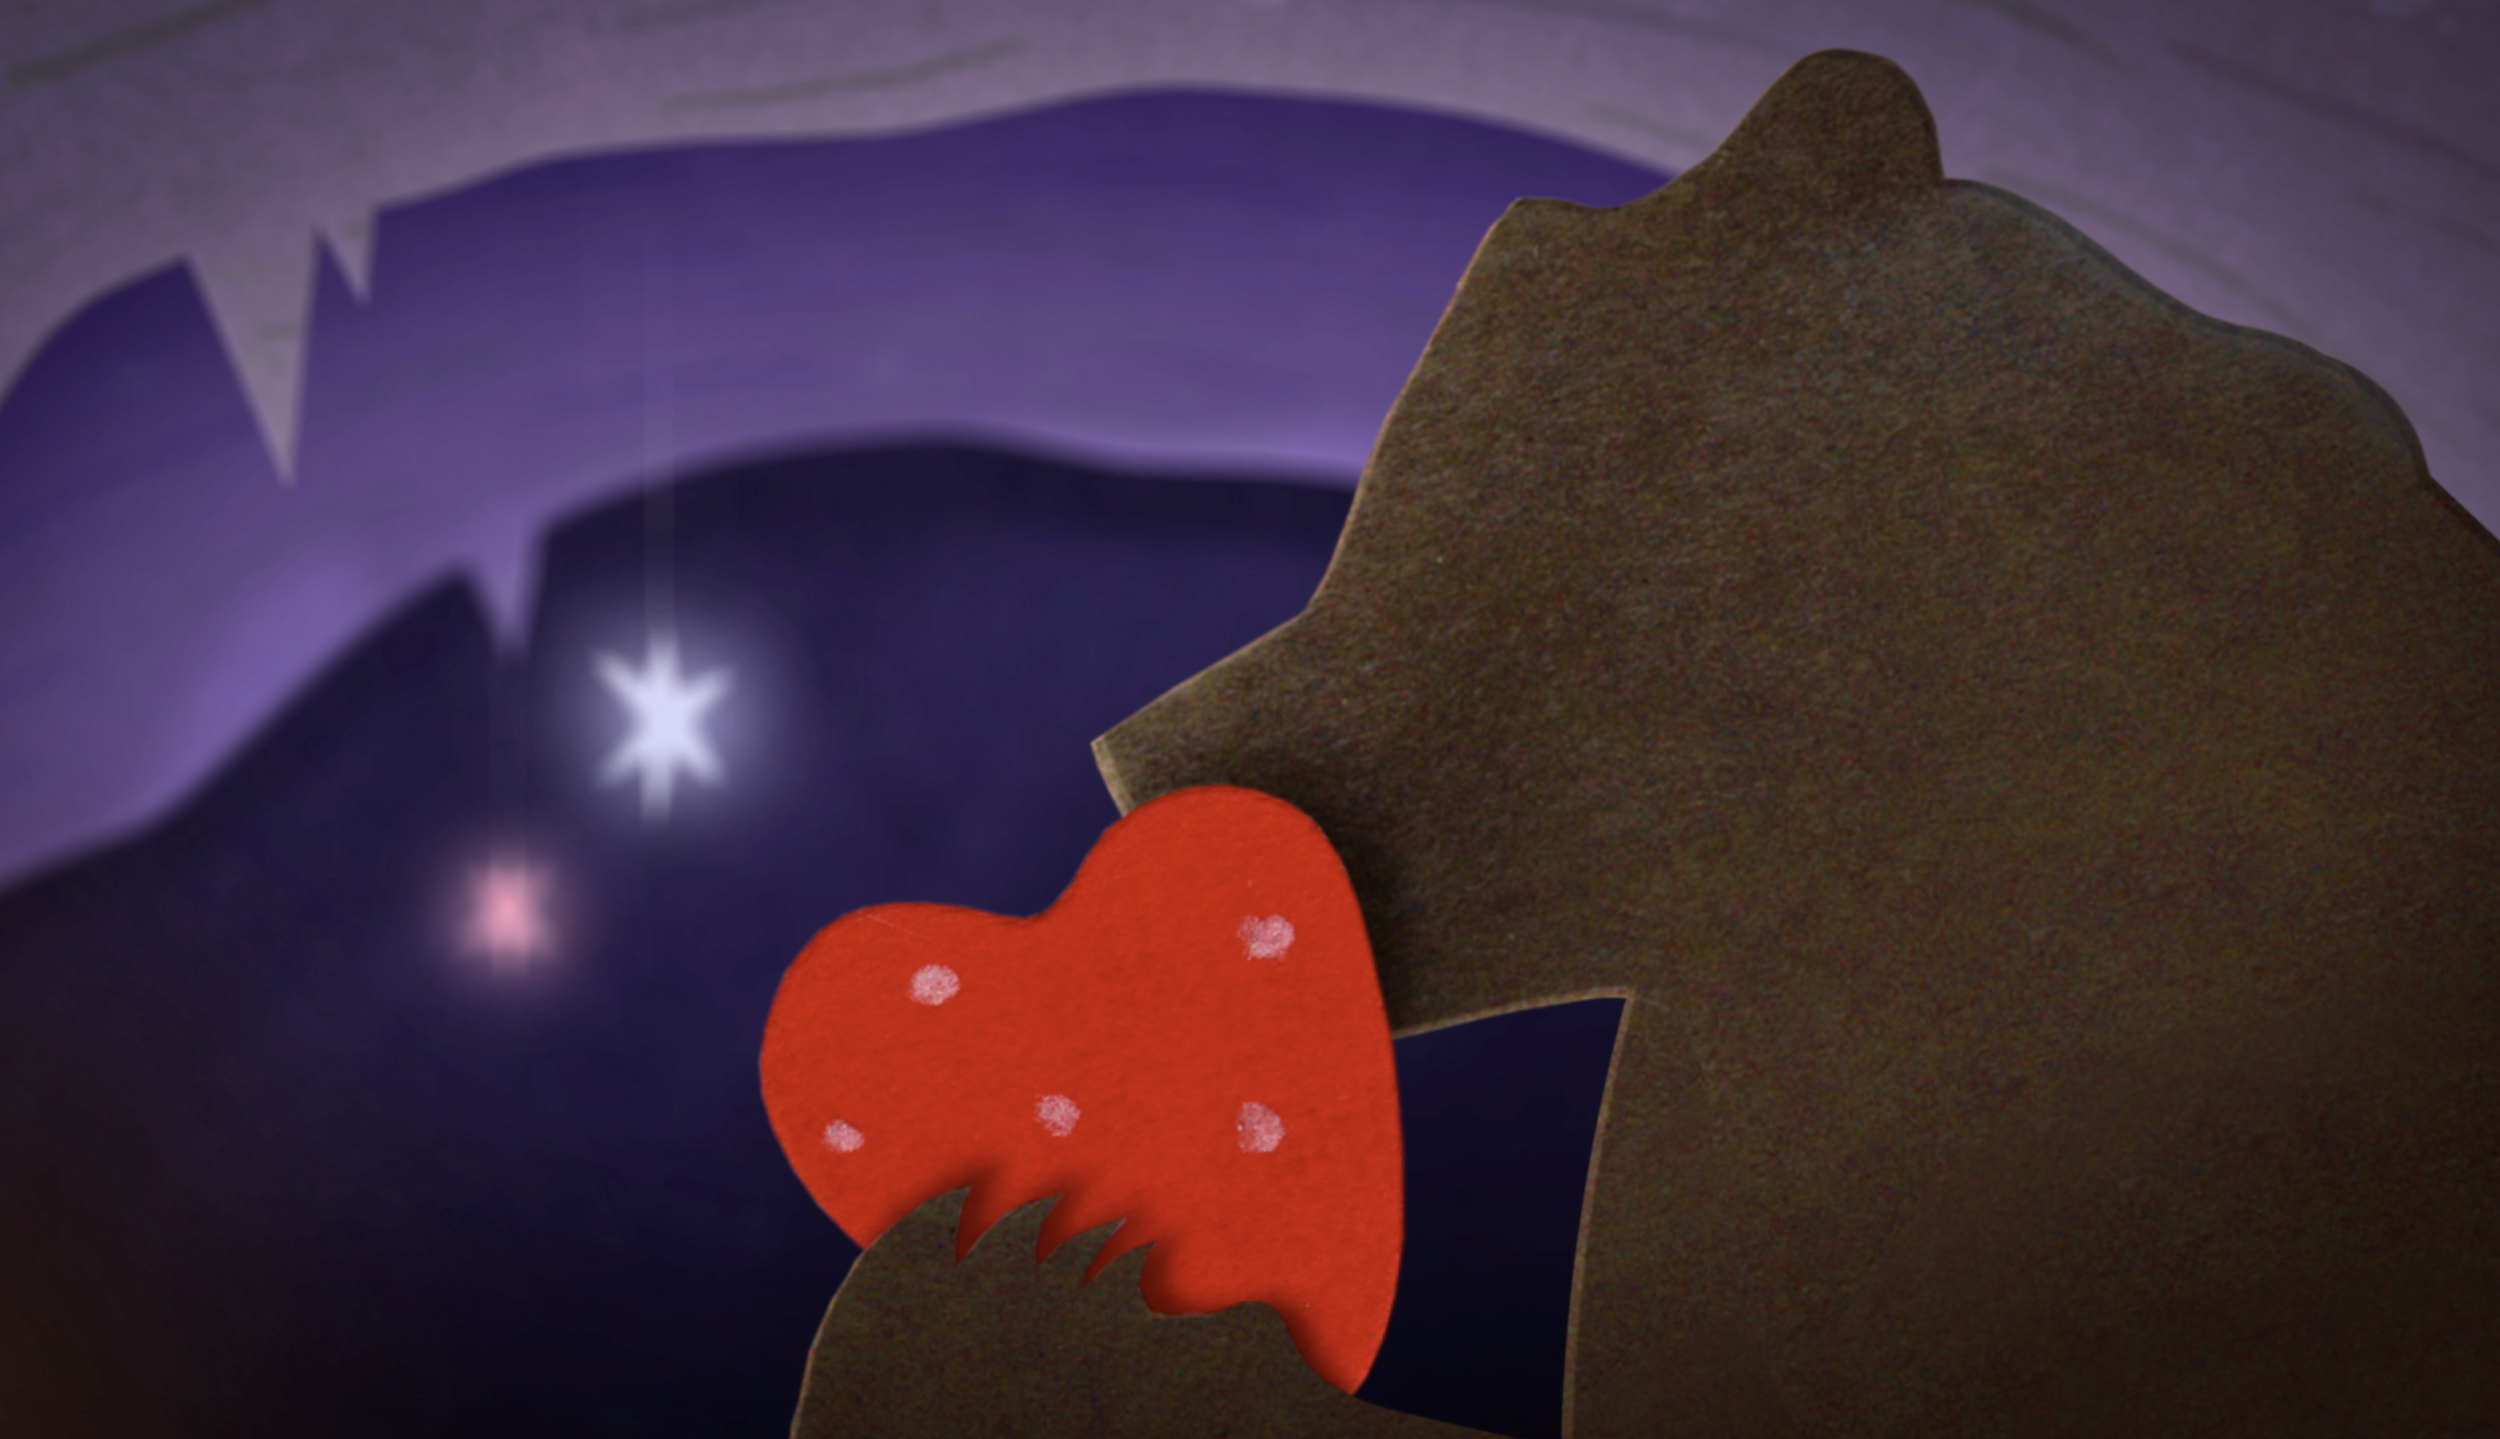 BEAR NIBBLES - Animated Commercial